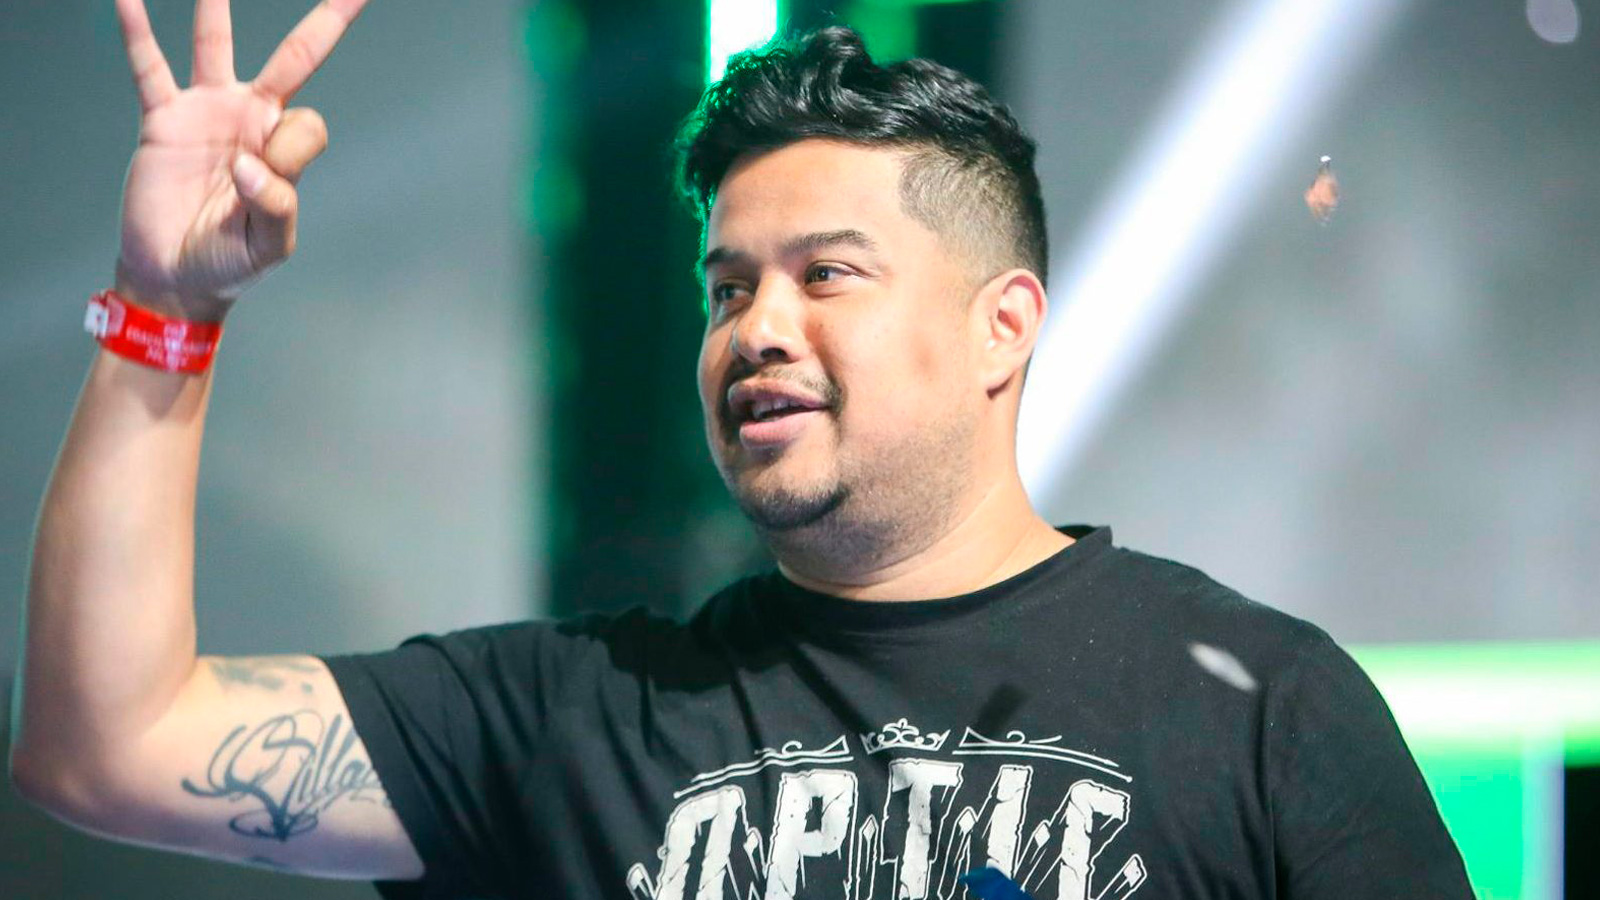 Hector Hecz Rodriguez Optic Gaming